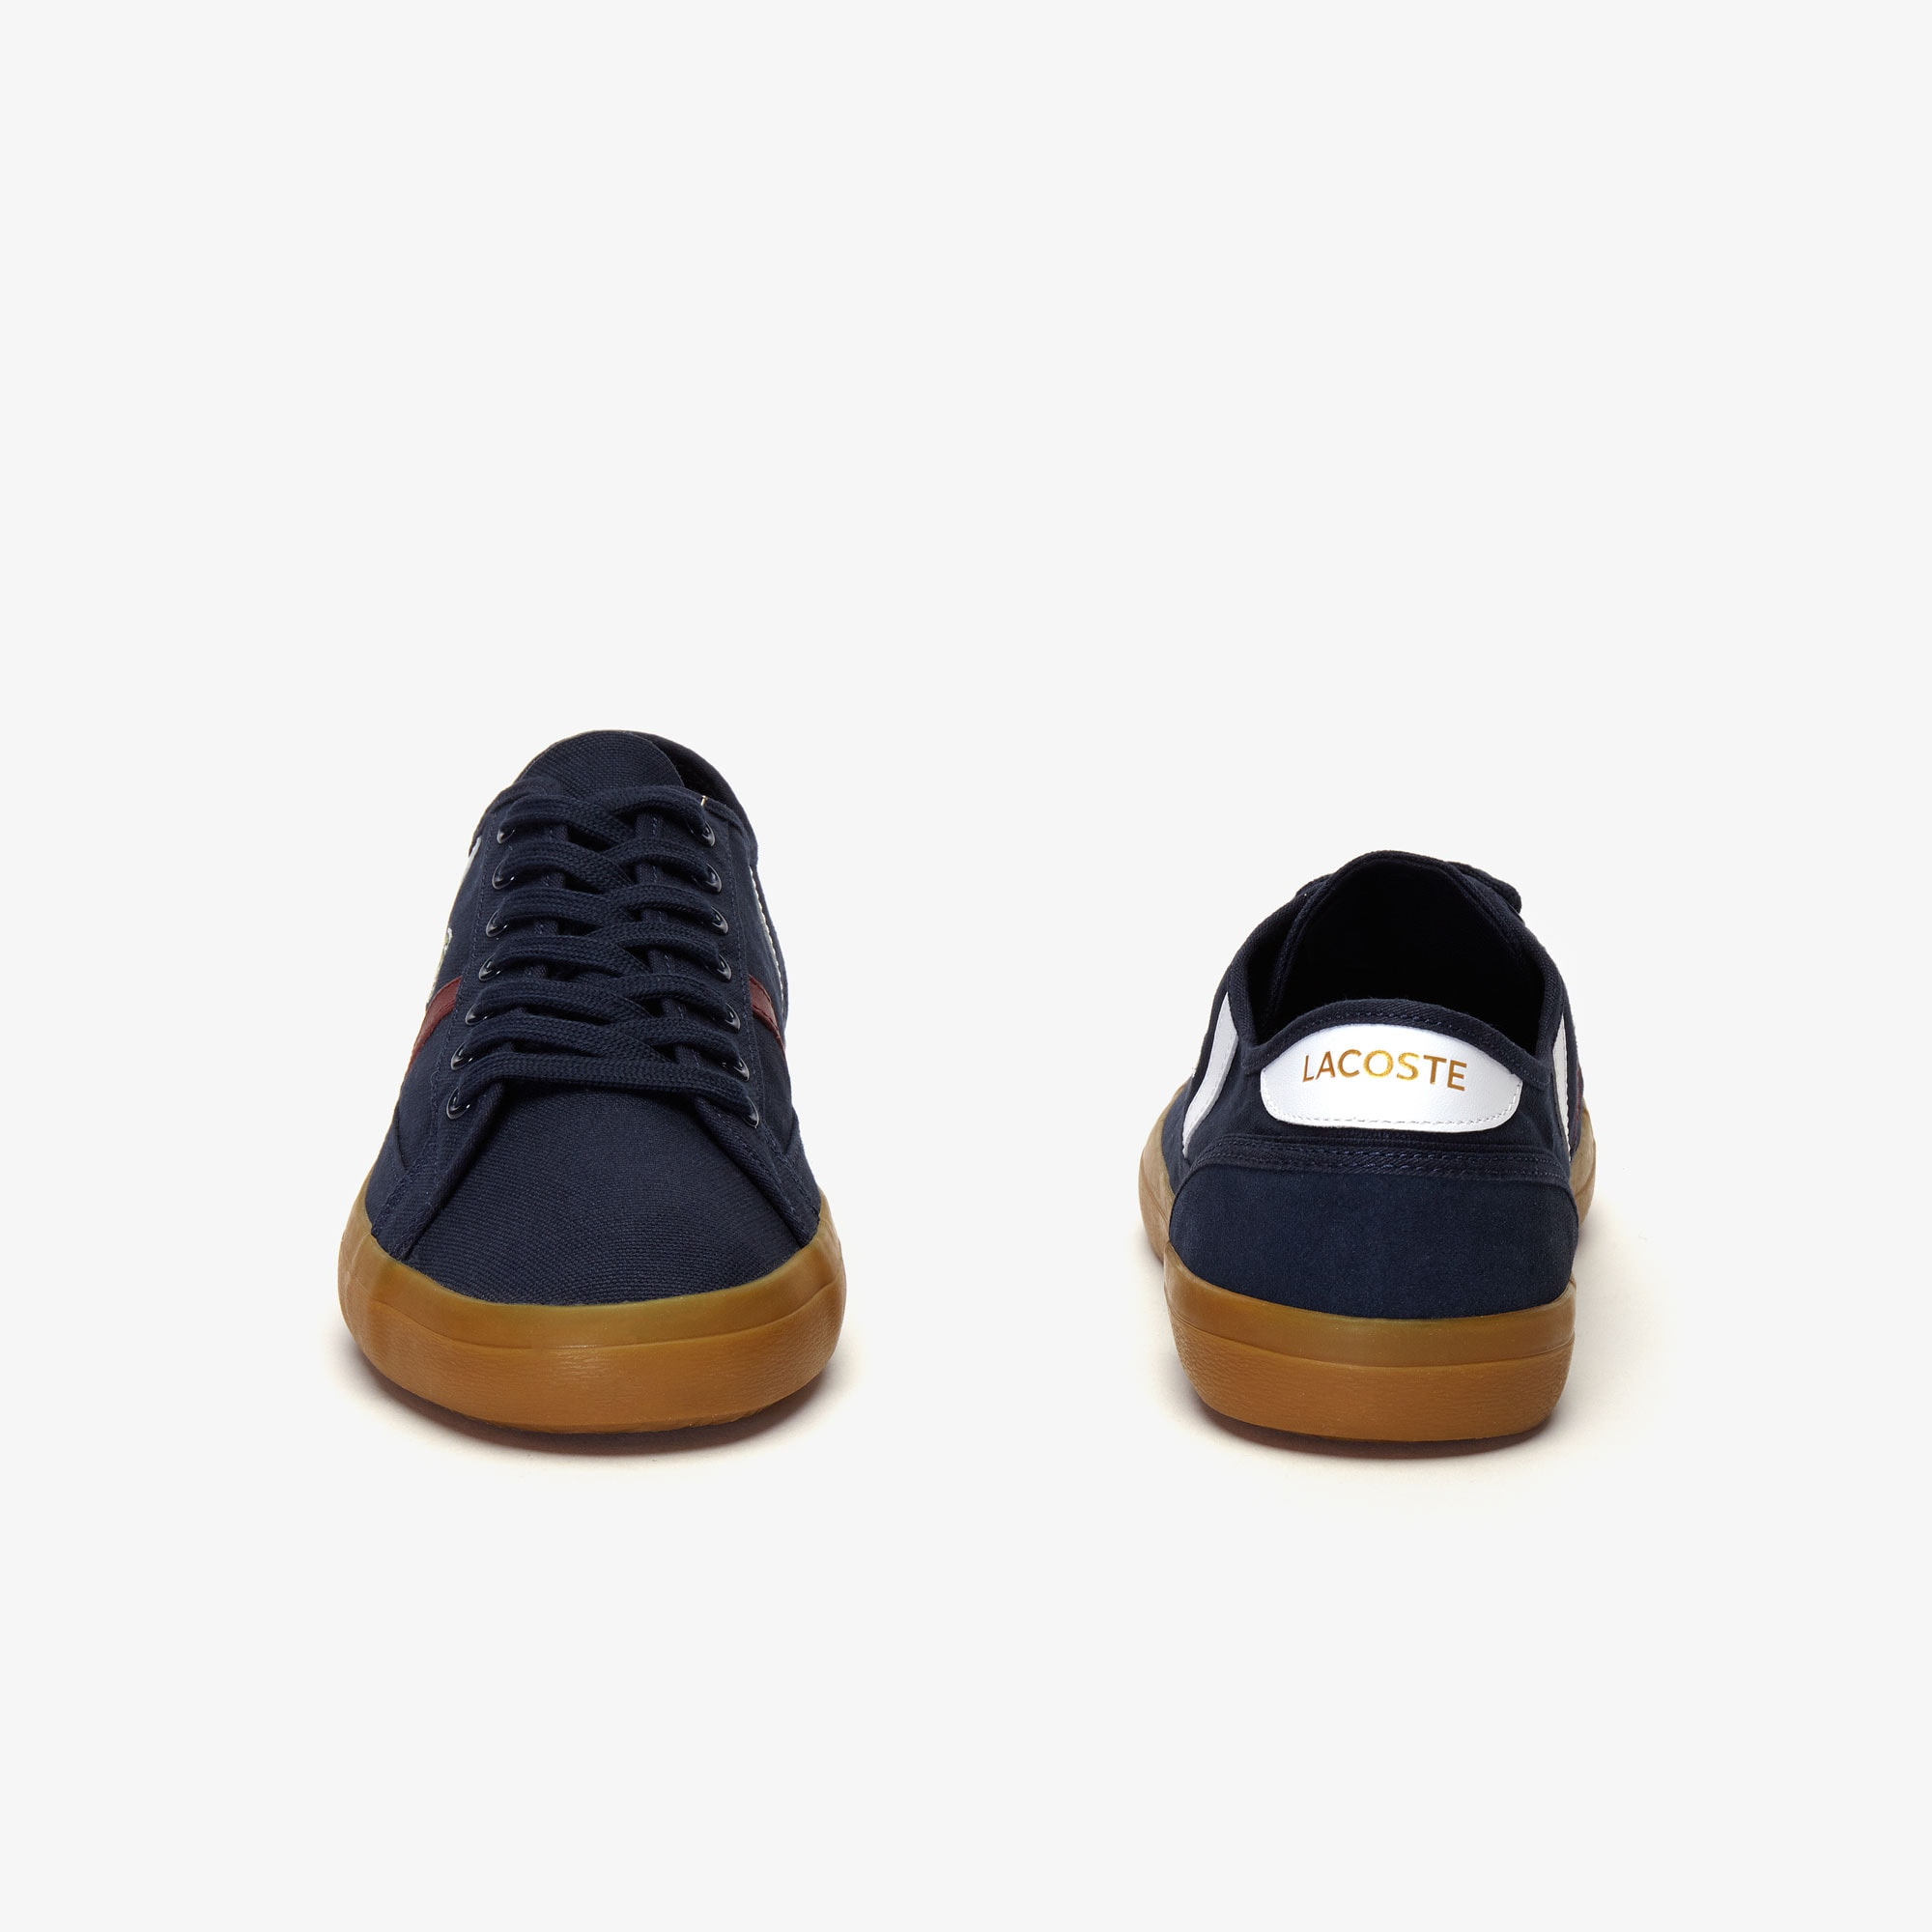 Men's Sideline Canvas and Two-tone Leather Trainers